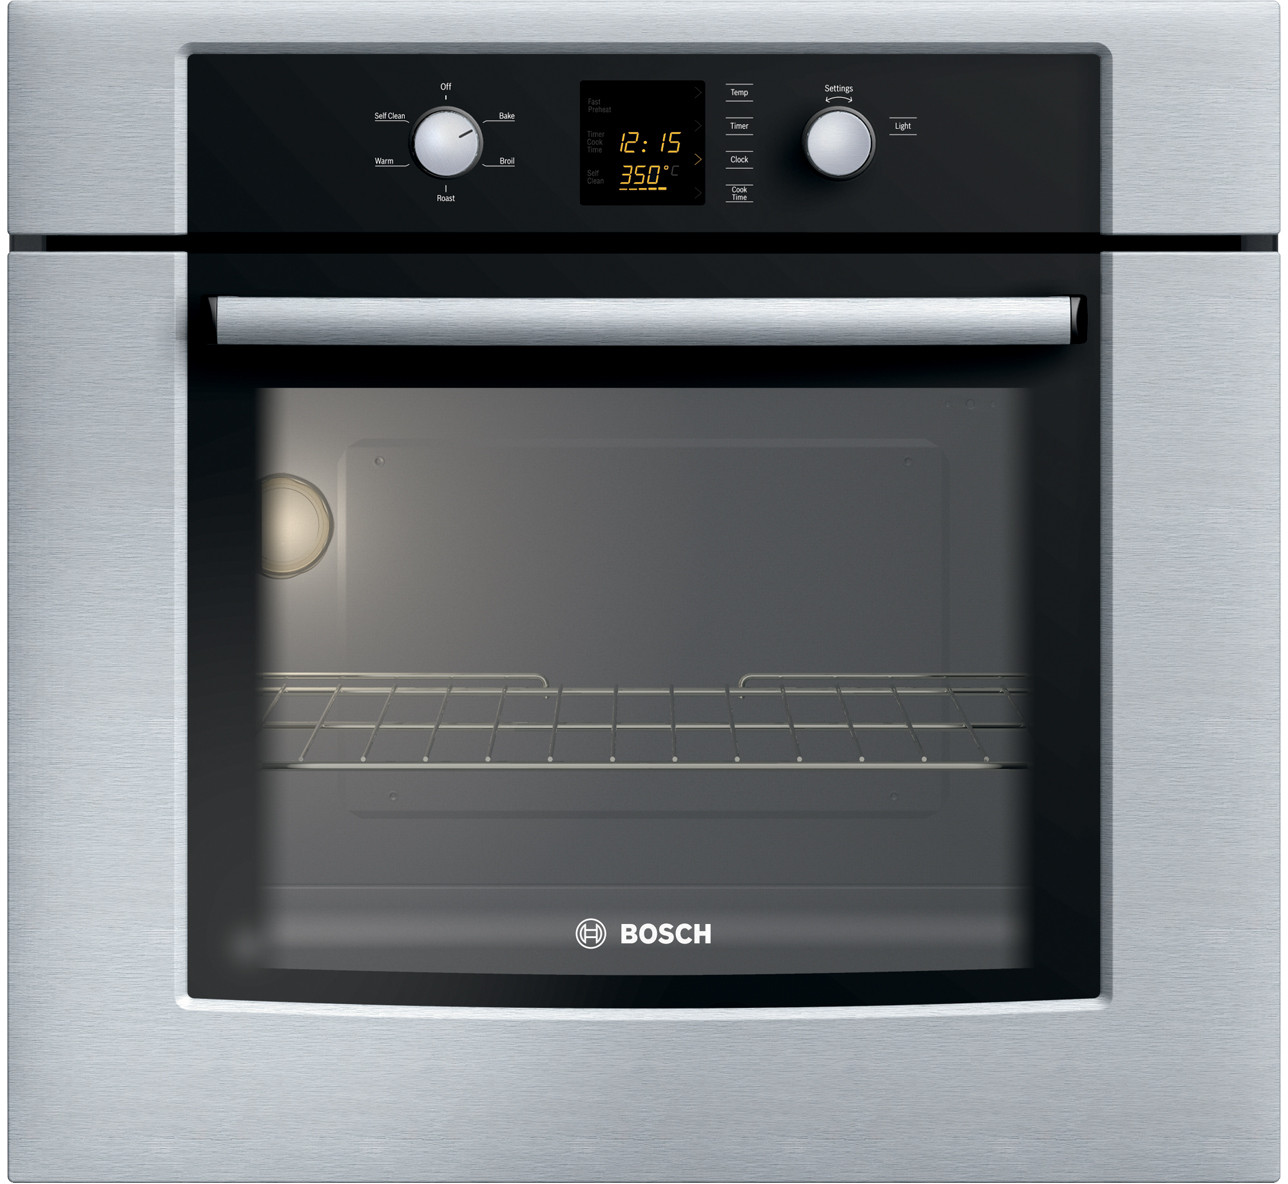 Bosch Hbl3350uc 30 Inch Electric Wall Oven With 4 Cooking